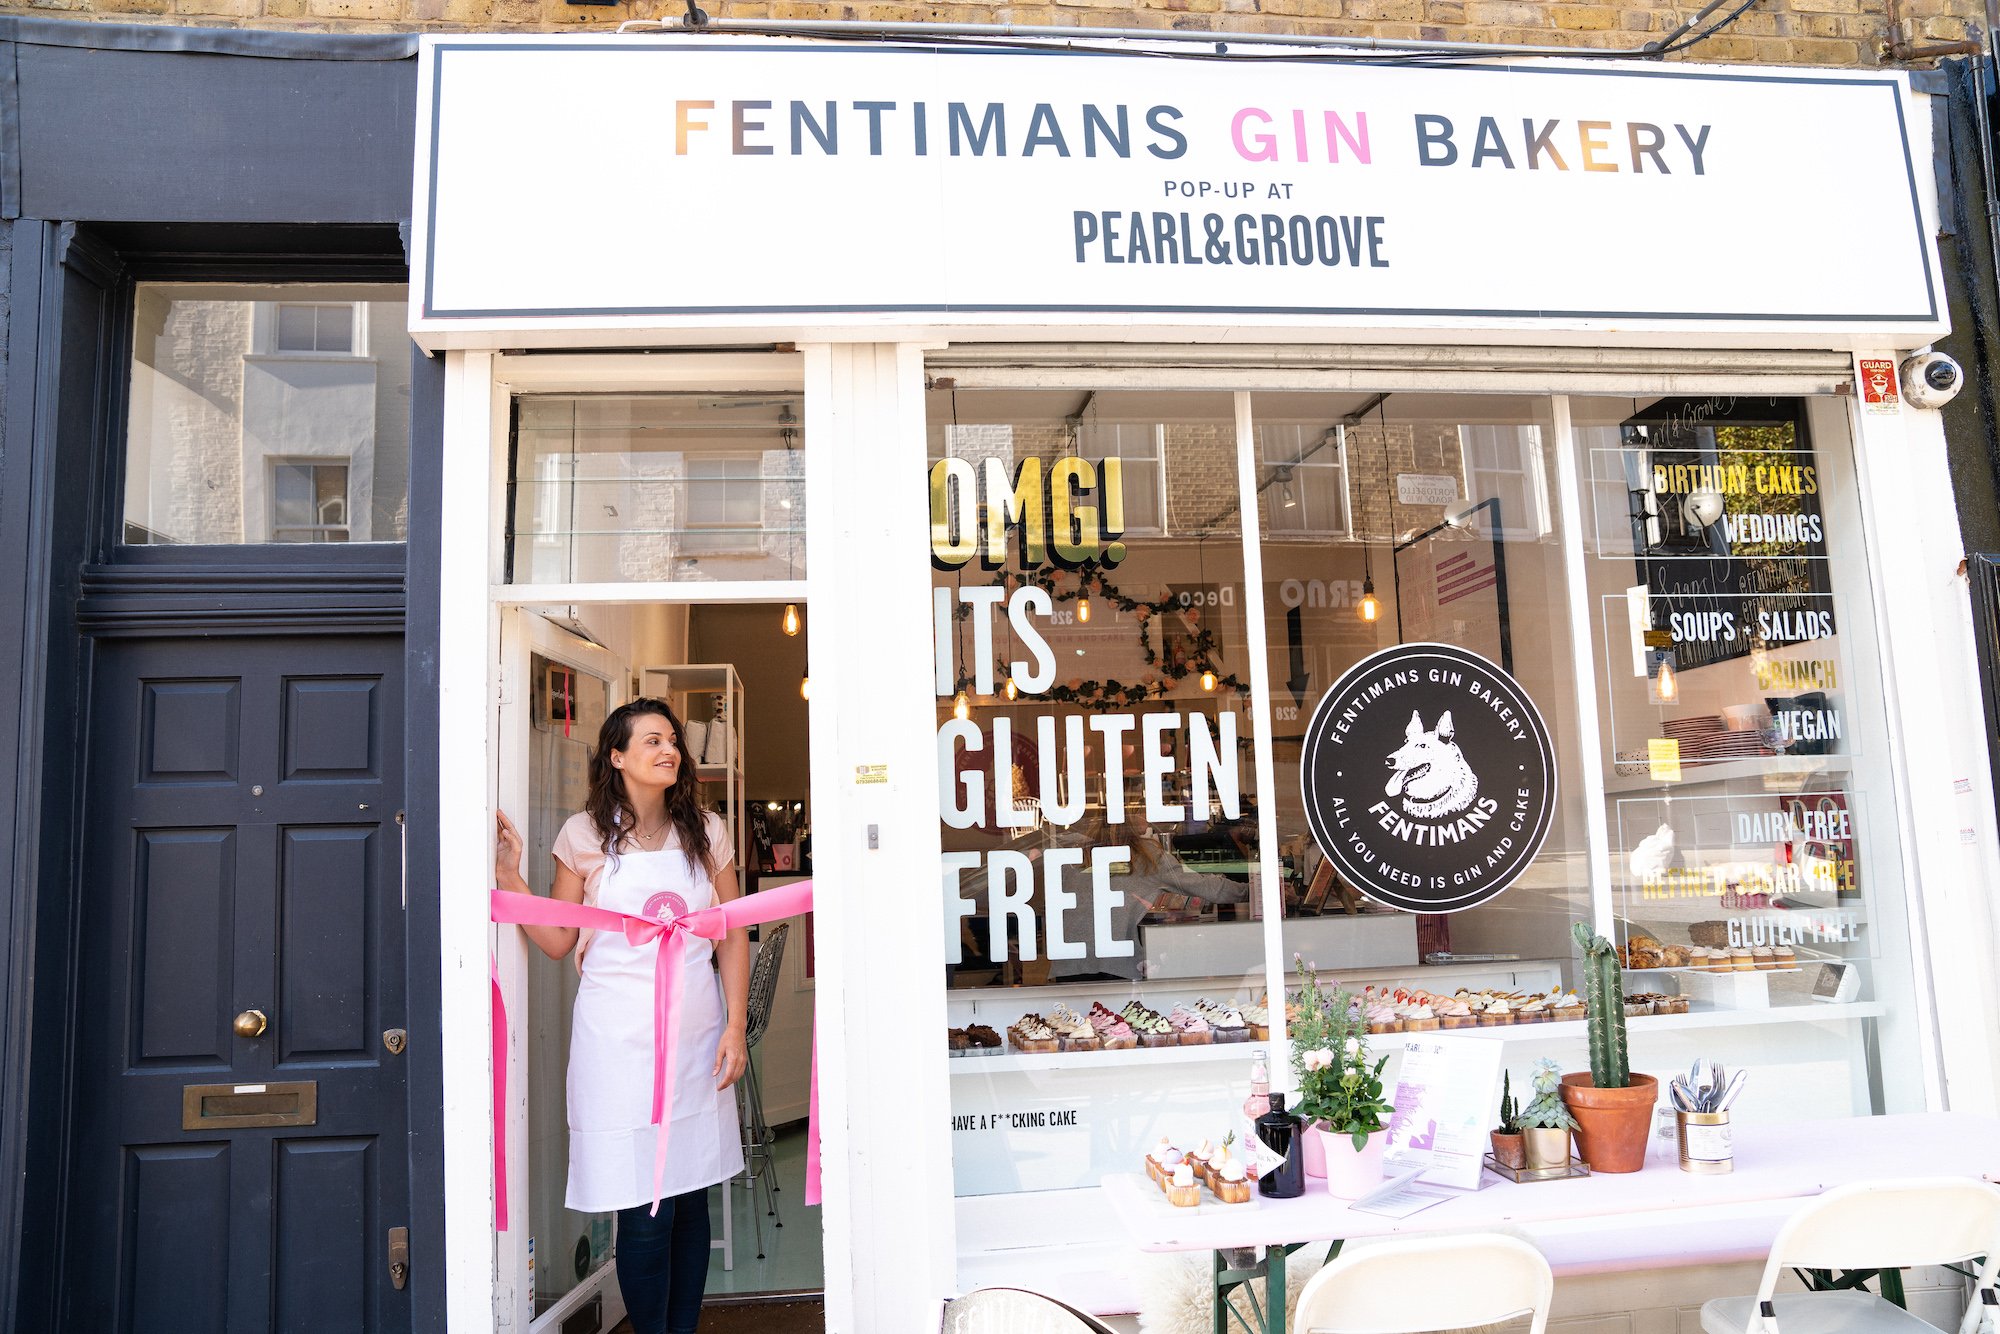 Quirky Group - Fentimans Gin Bakery at Pearl & Groove with Sophie Faldo